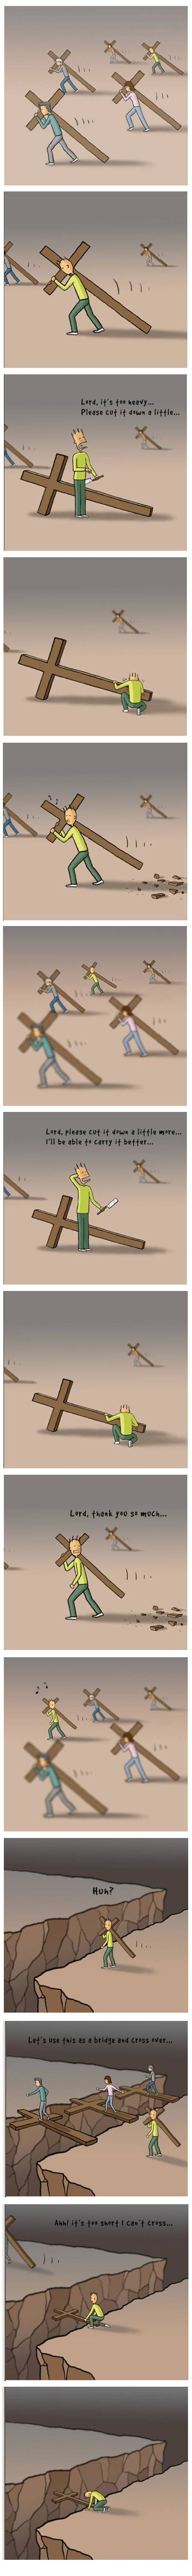 Being a good Christian means carrying your daily cross, and man is it heavy! What seems like a burden today, might be a blessing in the future though.   #Catholic #Christian #faith